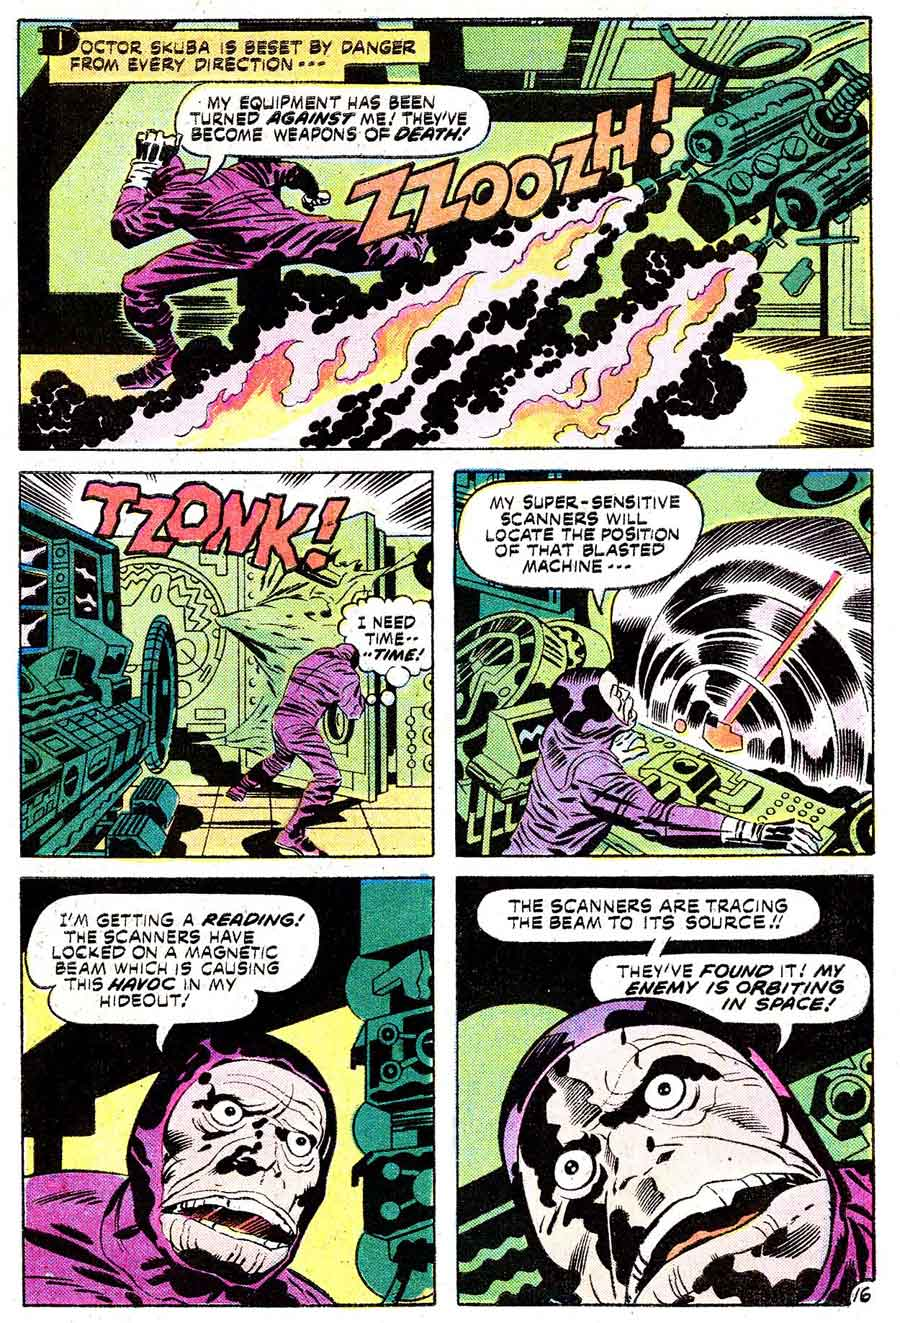 Omac v1 #8 dc bronze age comic book page art by Jack Kirby